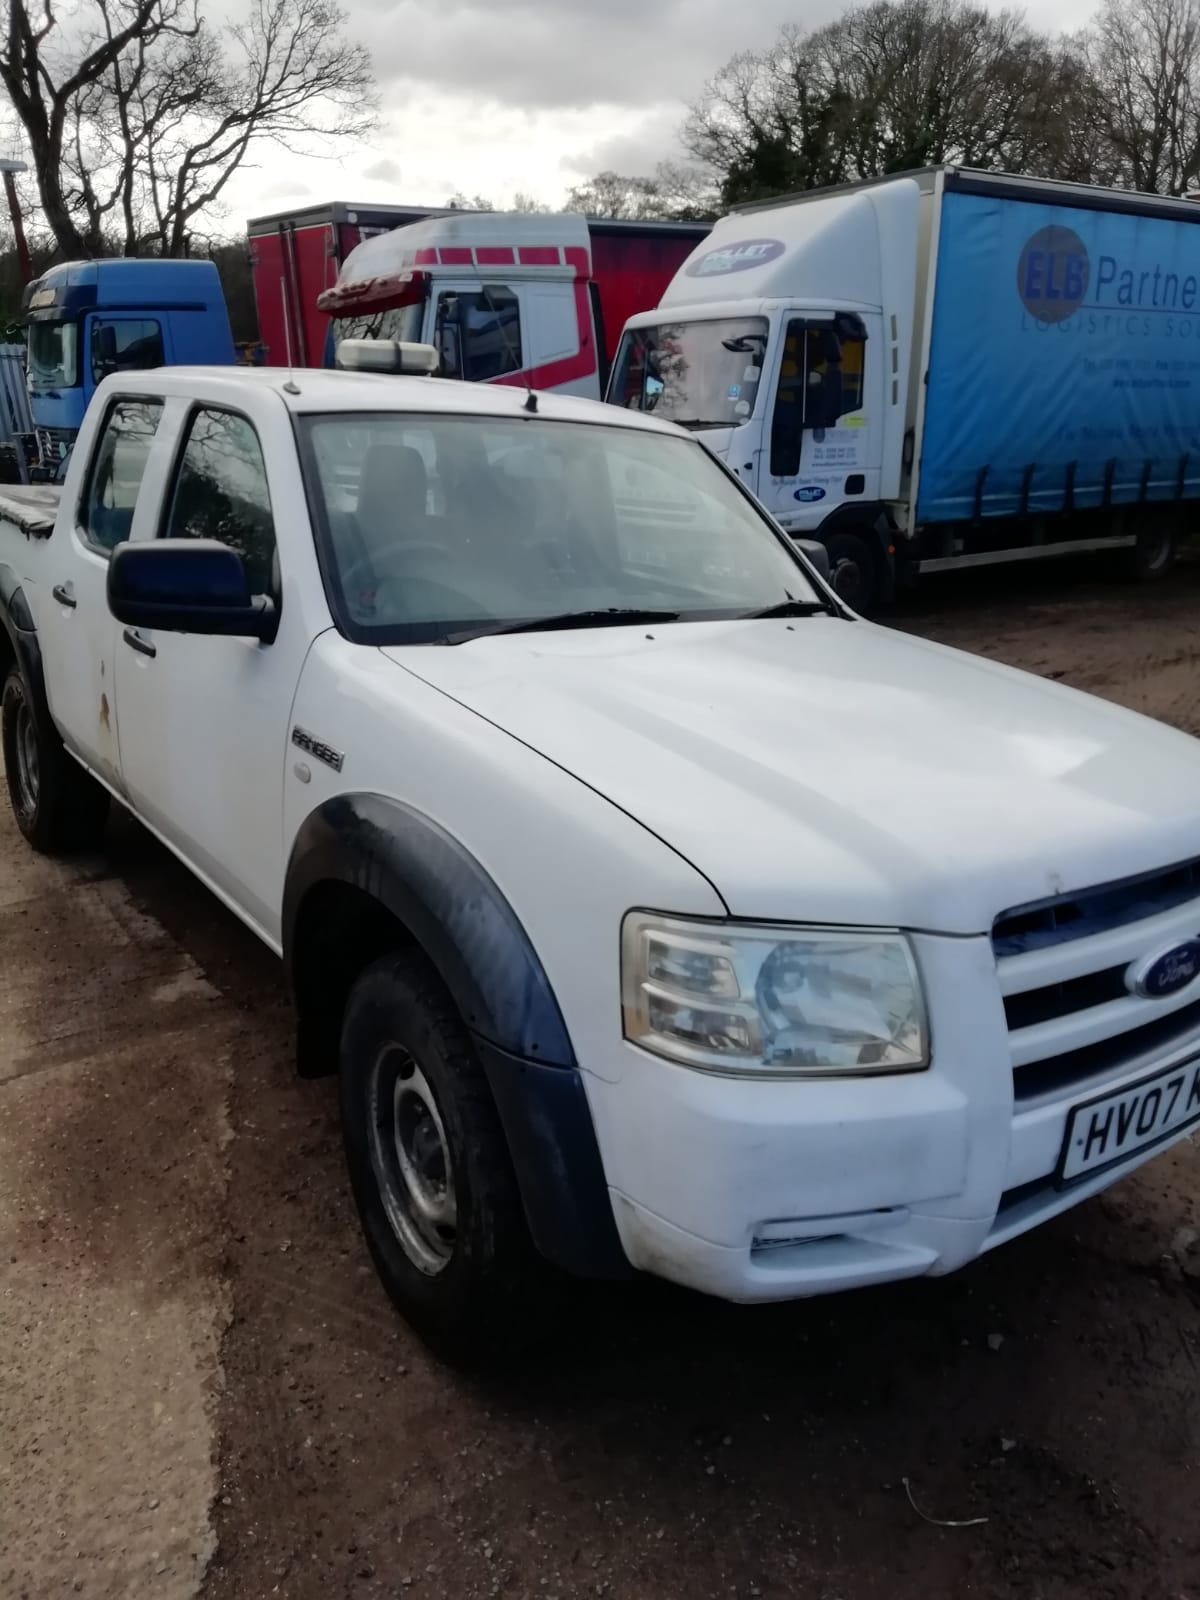 Ford Ranger 2.5TDCi ( 143PS ) 4×4, Double Cab, One company owner from new